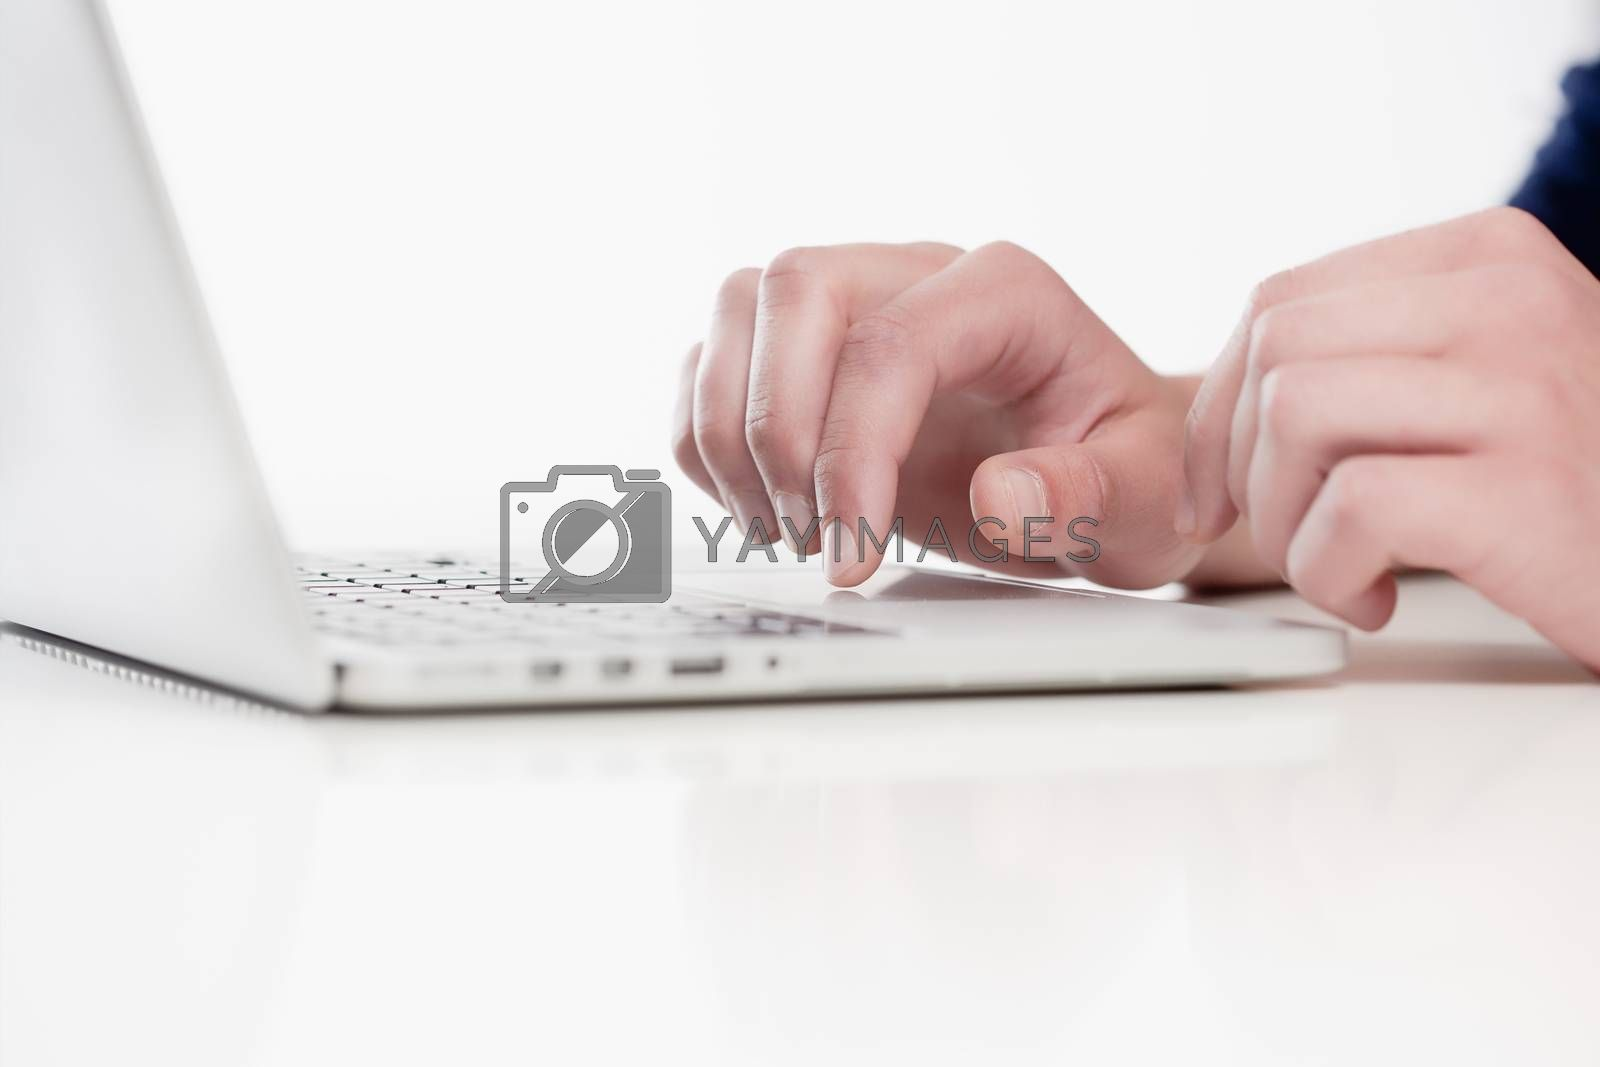 Royalty free image of Closeup of Fingers Using Keyboard by courtyardpix